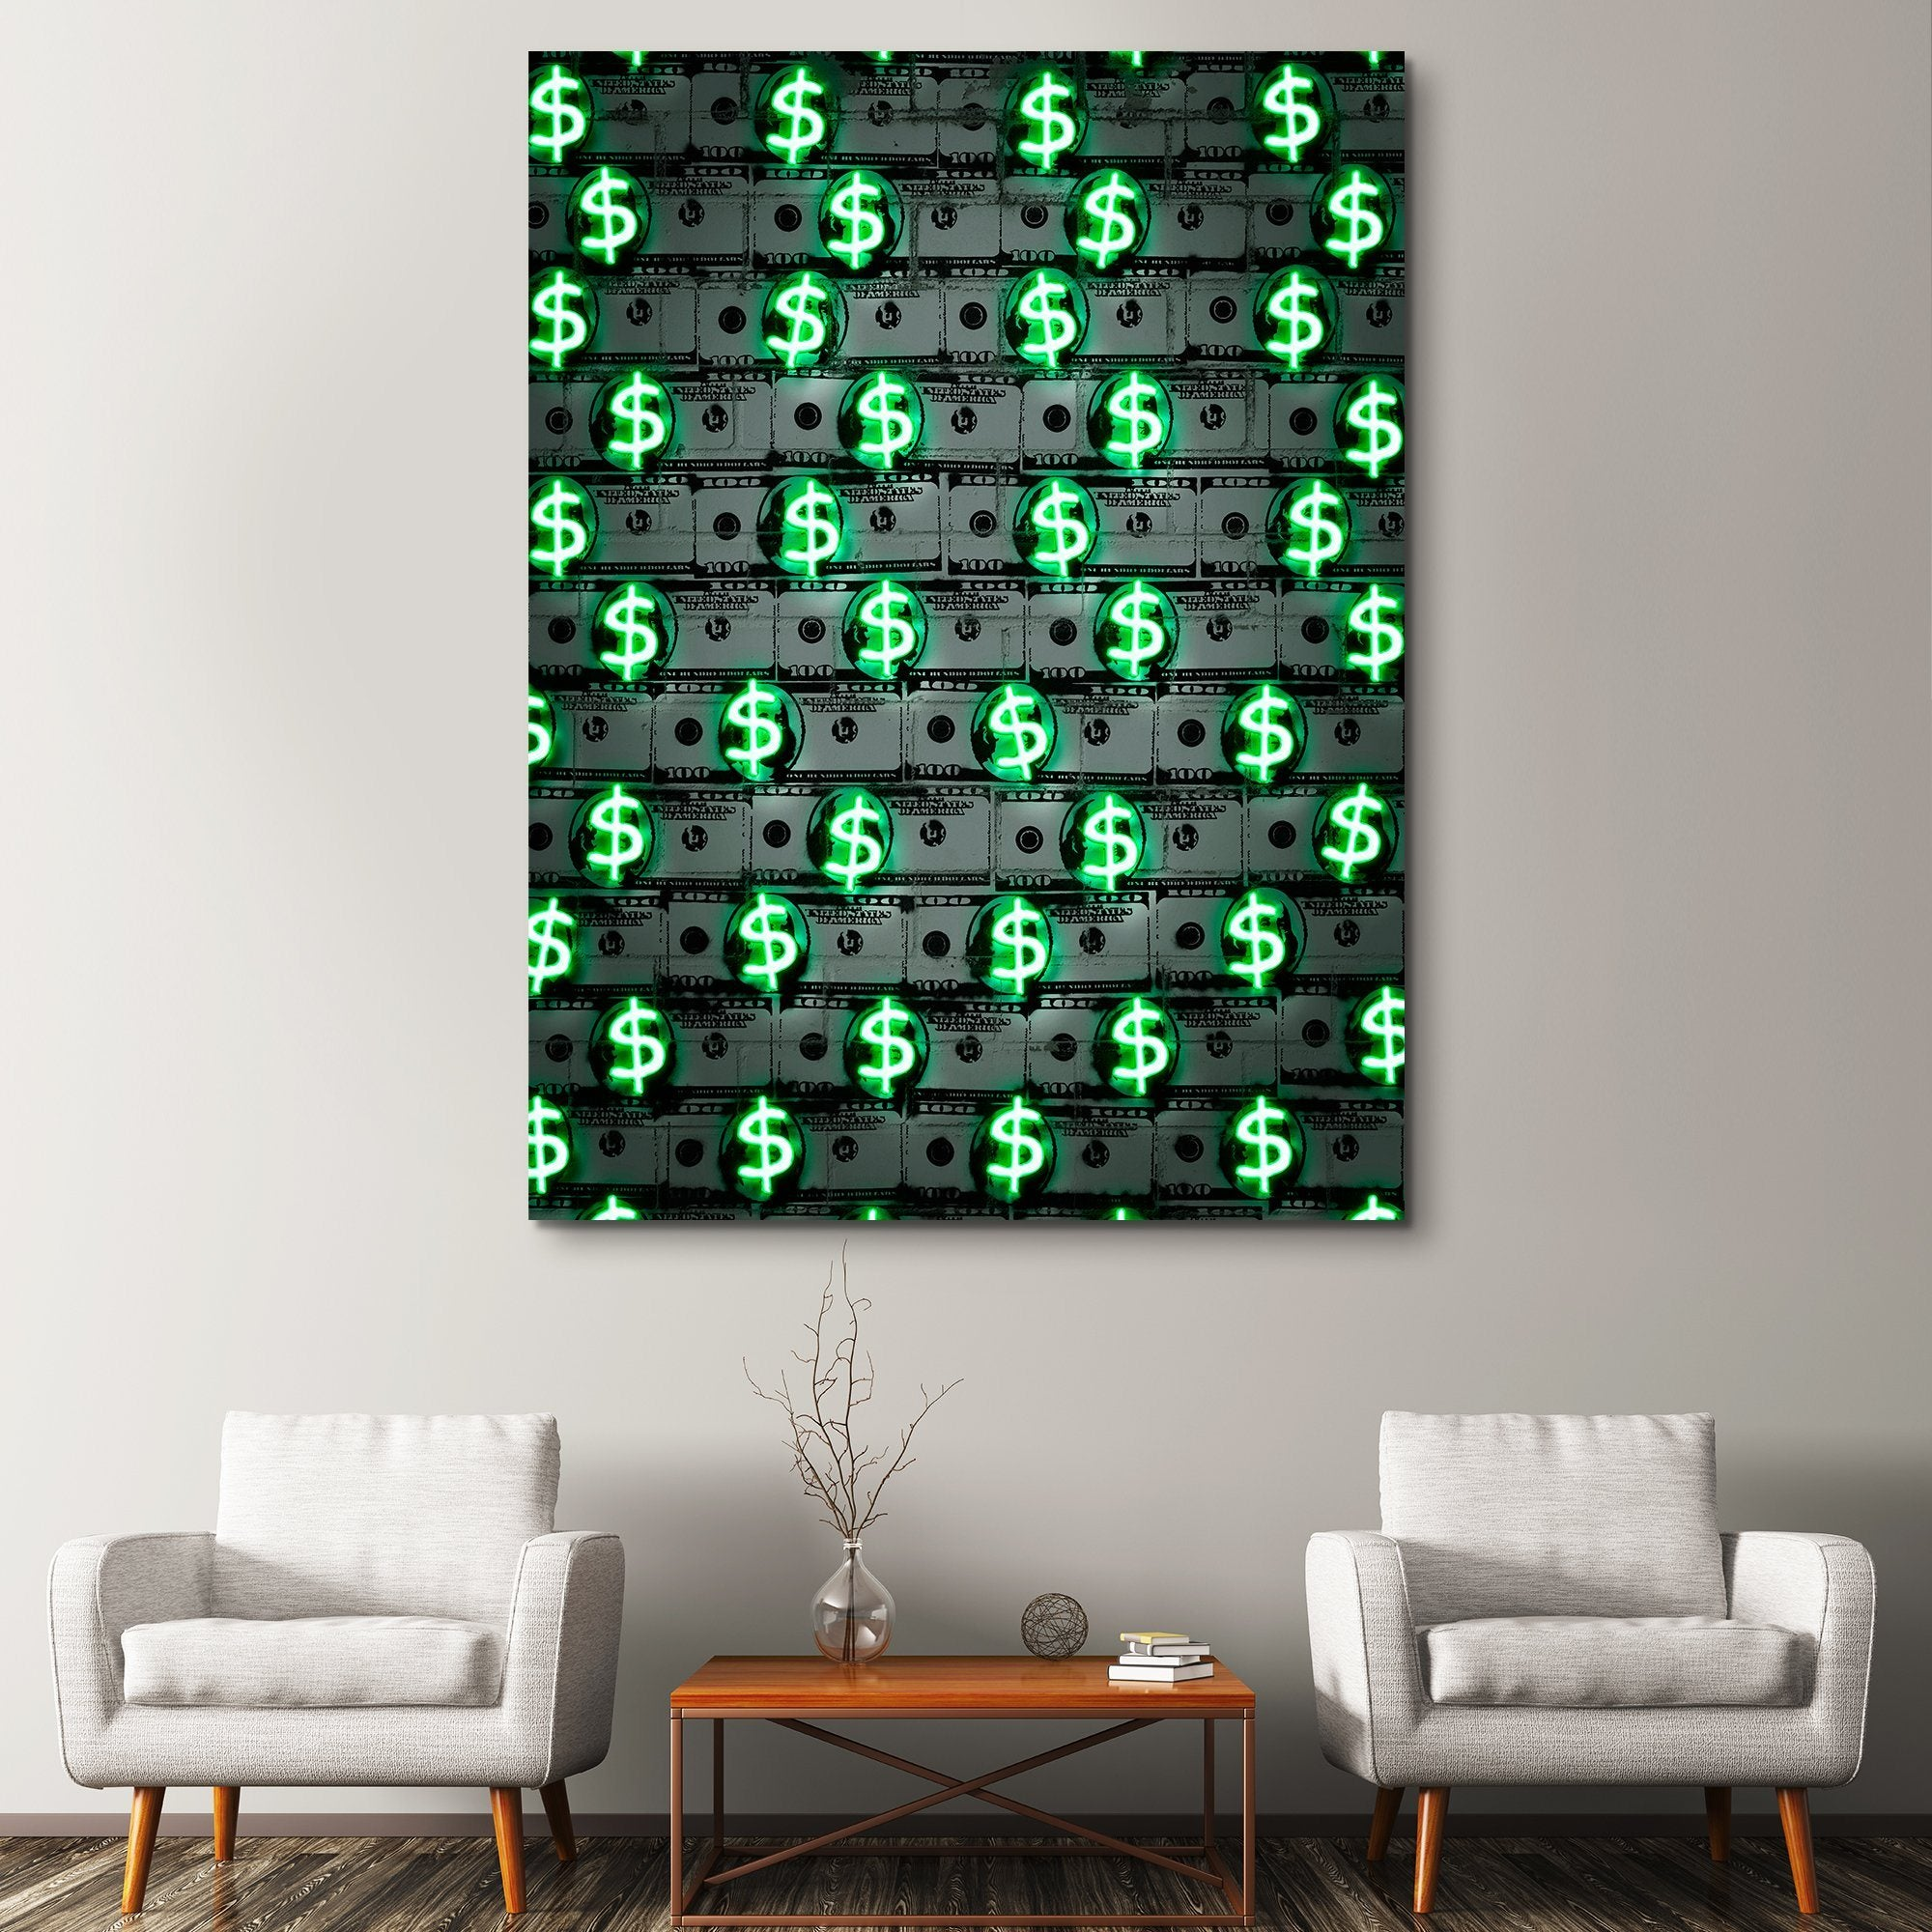 Money Money Money wall art